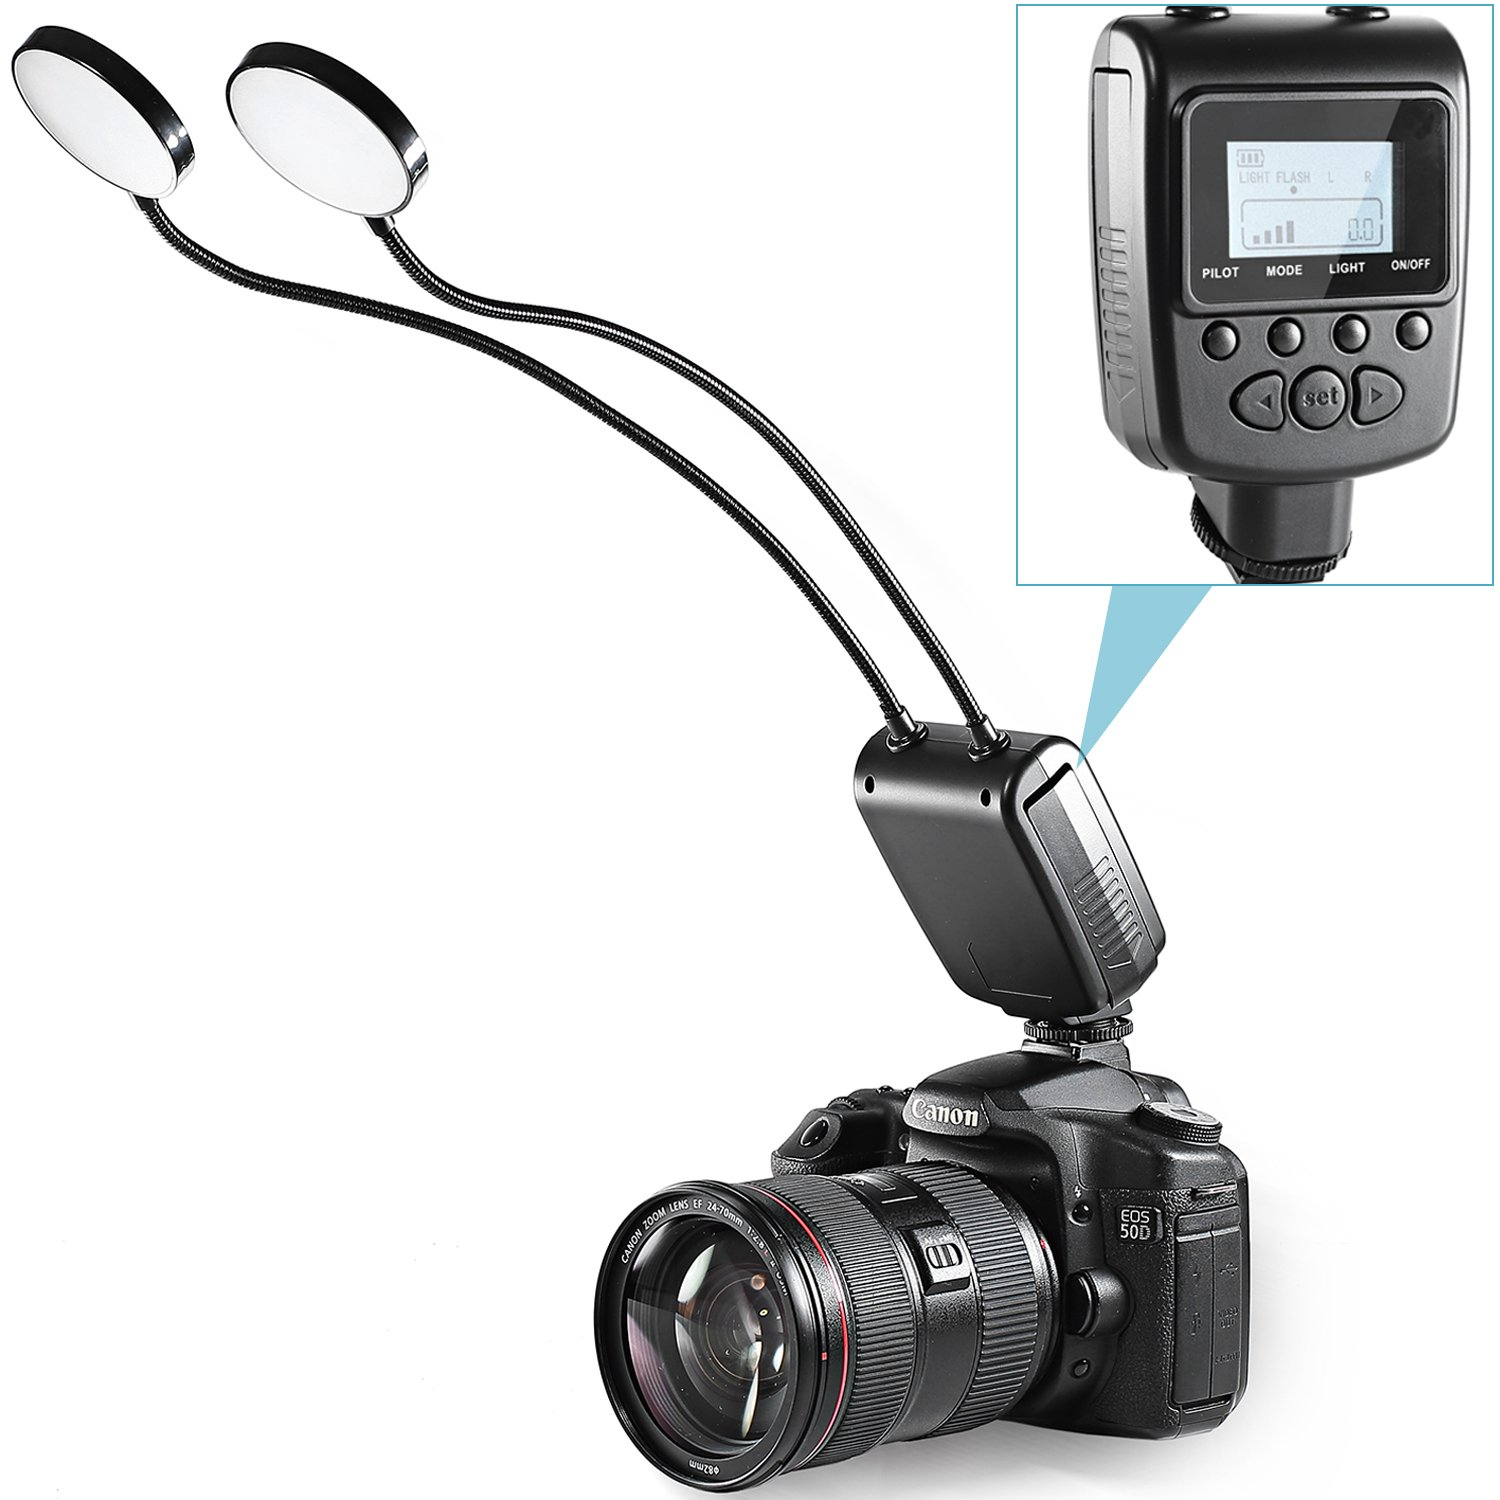 Amazon.com  Neewer Versatile Flexible Two Metal Tube Adjustable LED Round Light Flash with LCD Display for Macro Close-up Photography Lighting ...  sc 1 st  Amazon.com & Amazon.com : Neewer Versatile Flexible Two Metal Tube Adjustable ... azcodes.com